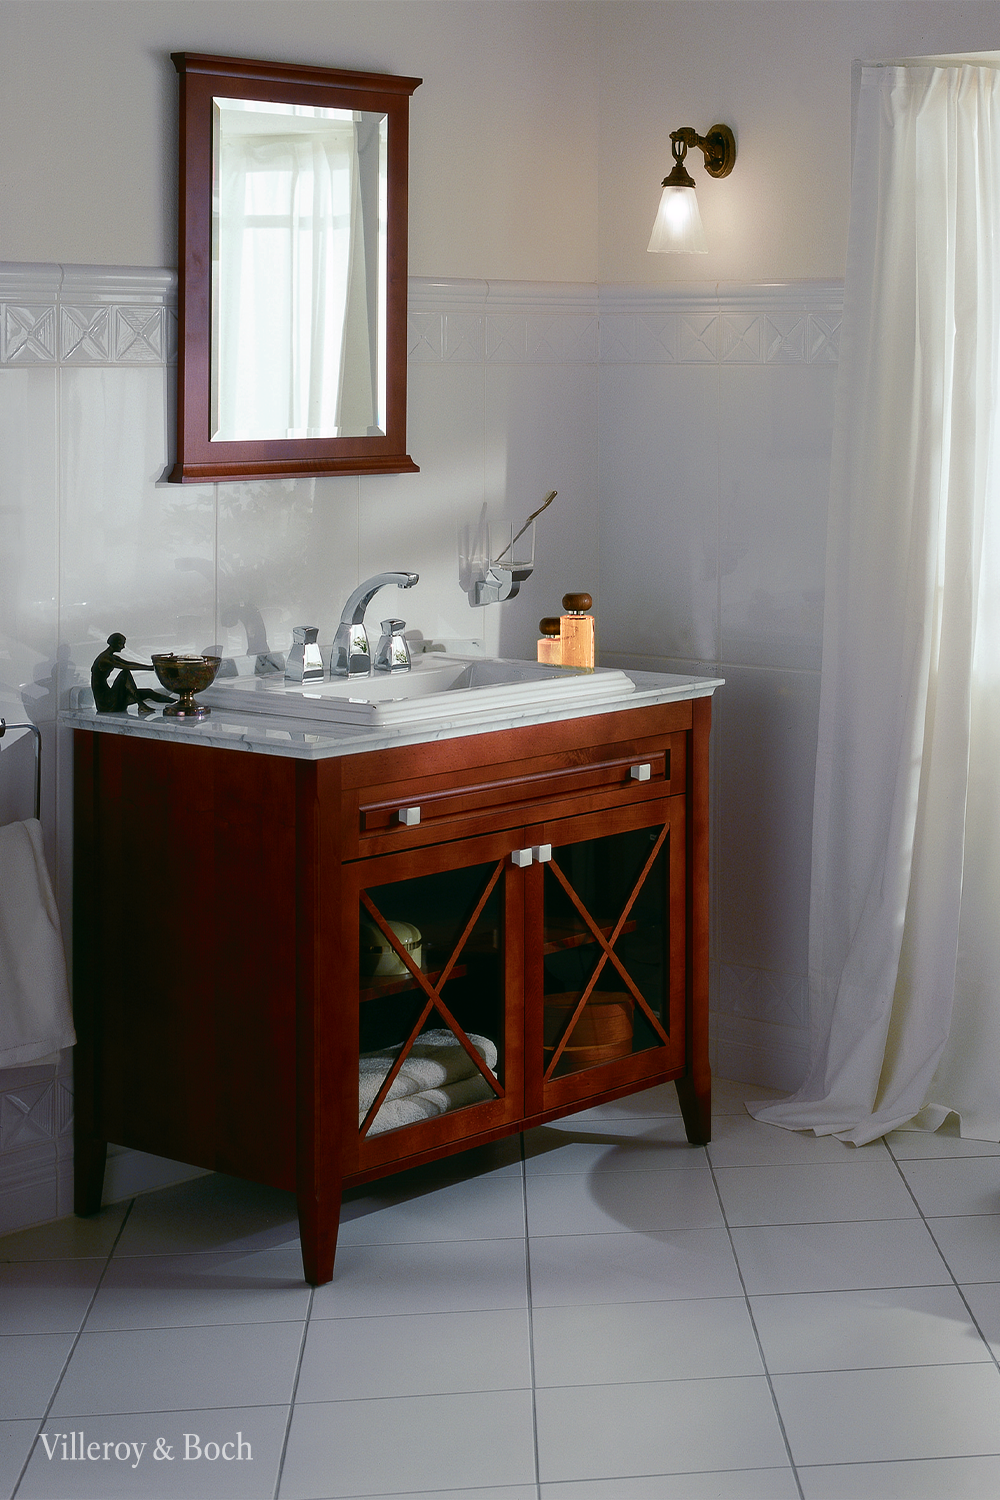 Mirror Mirror On The Wall Show Me The Most Beautiful Bathrooms Of Them All Badezimmer Inspiration Rustikal Weiss Rustikal